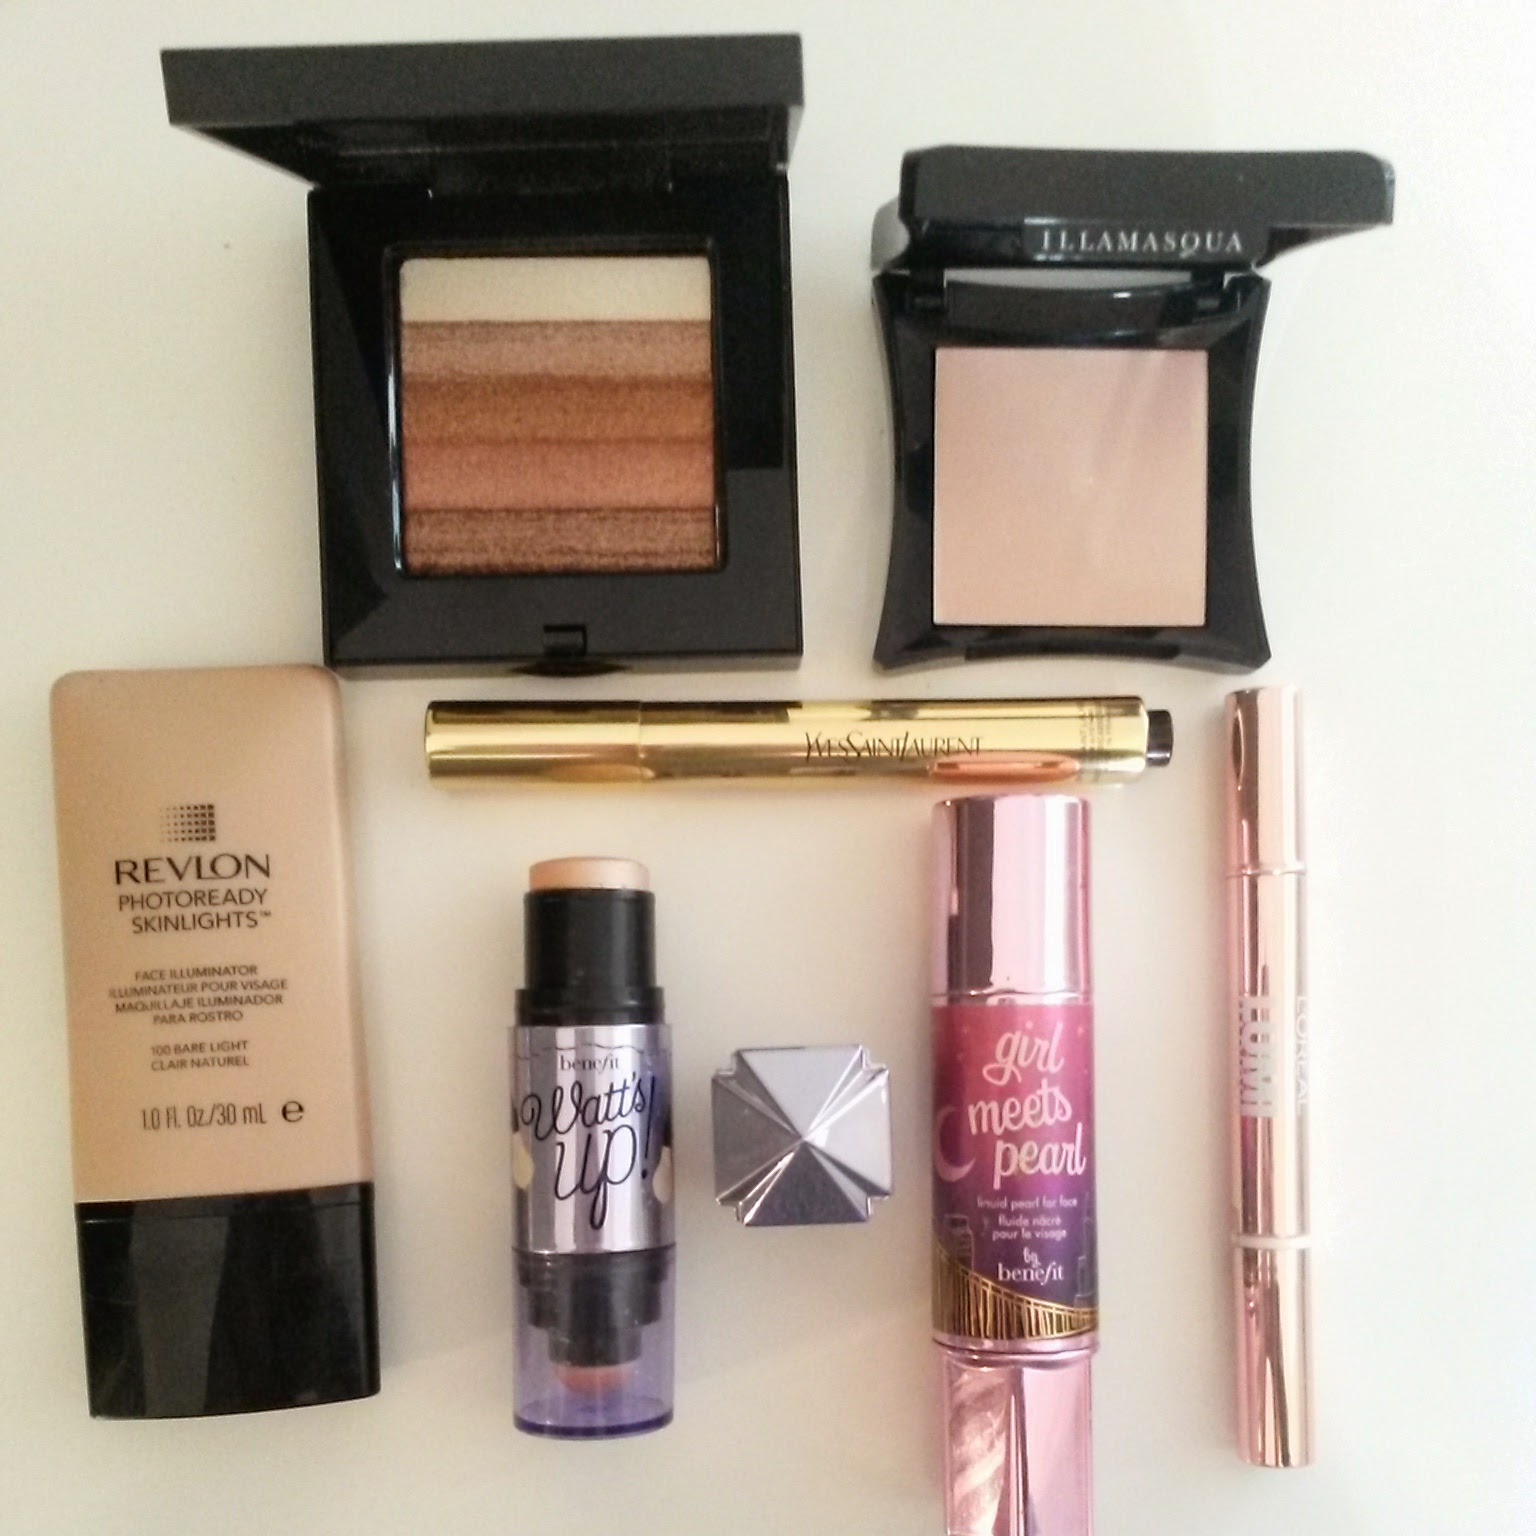 Best highlighters and illuminating makeup